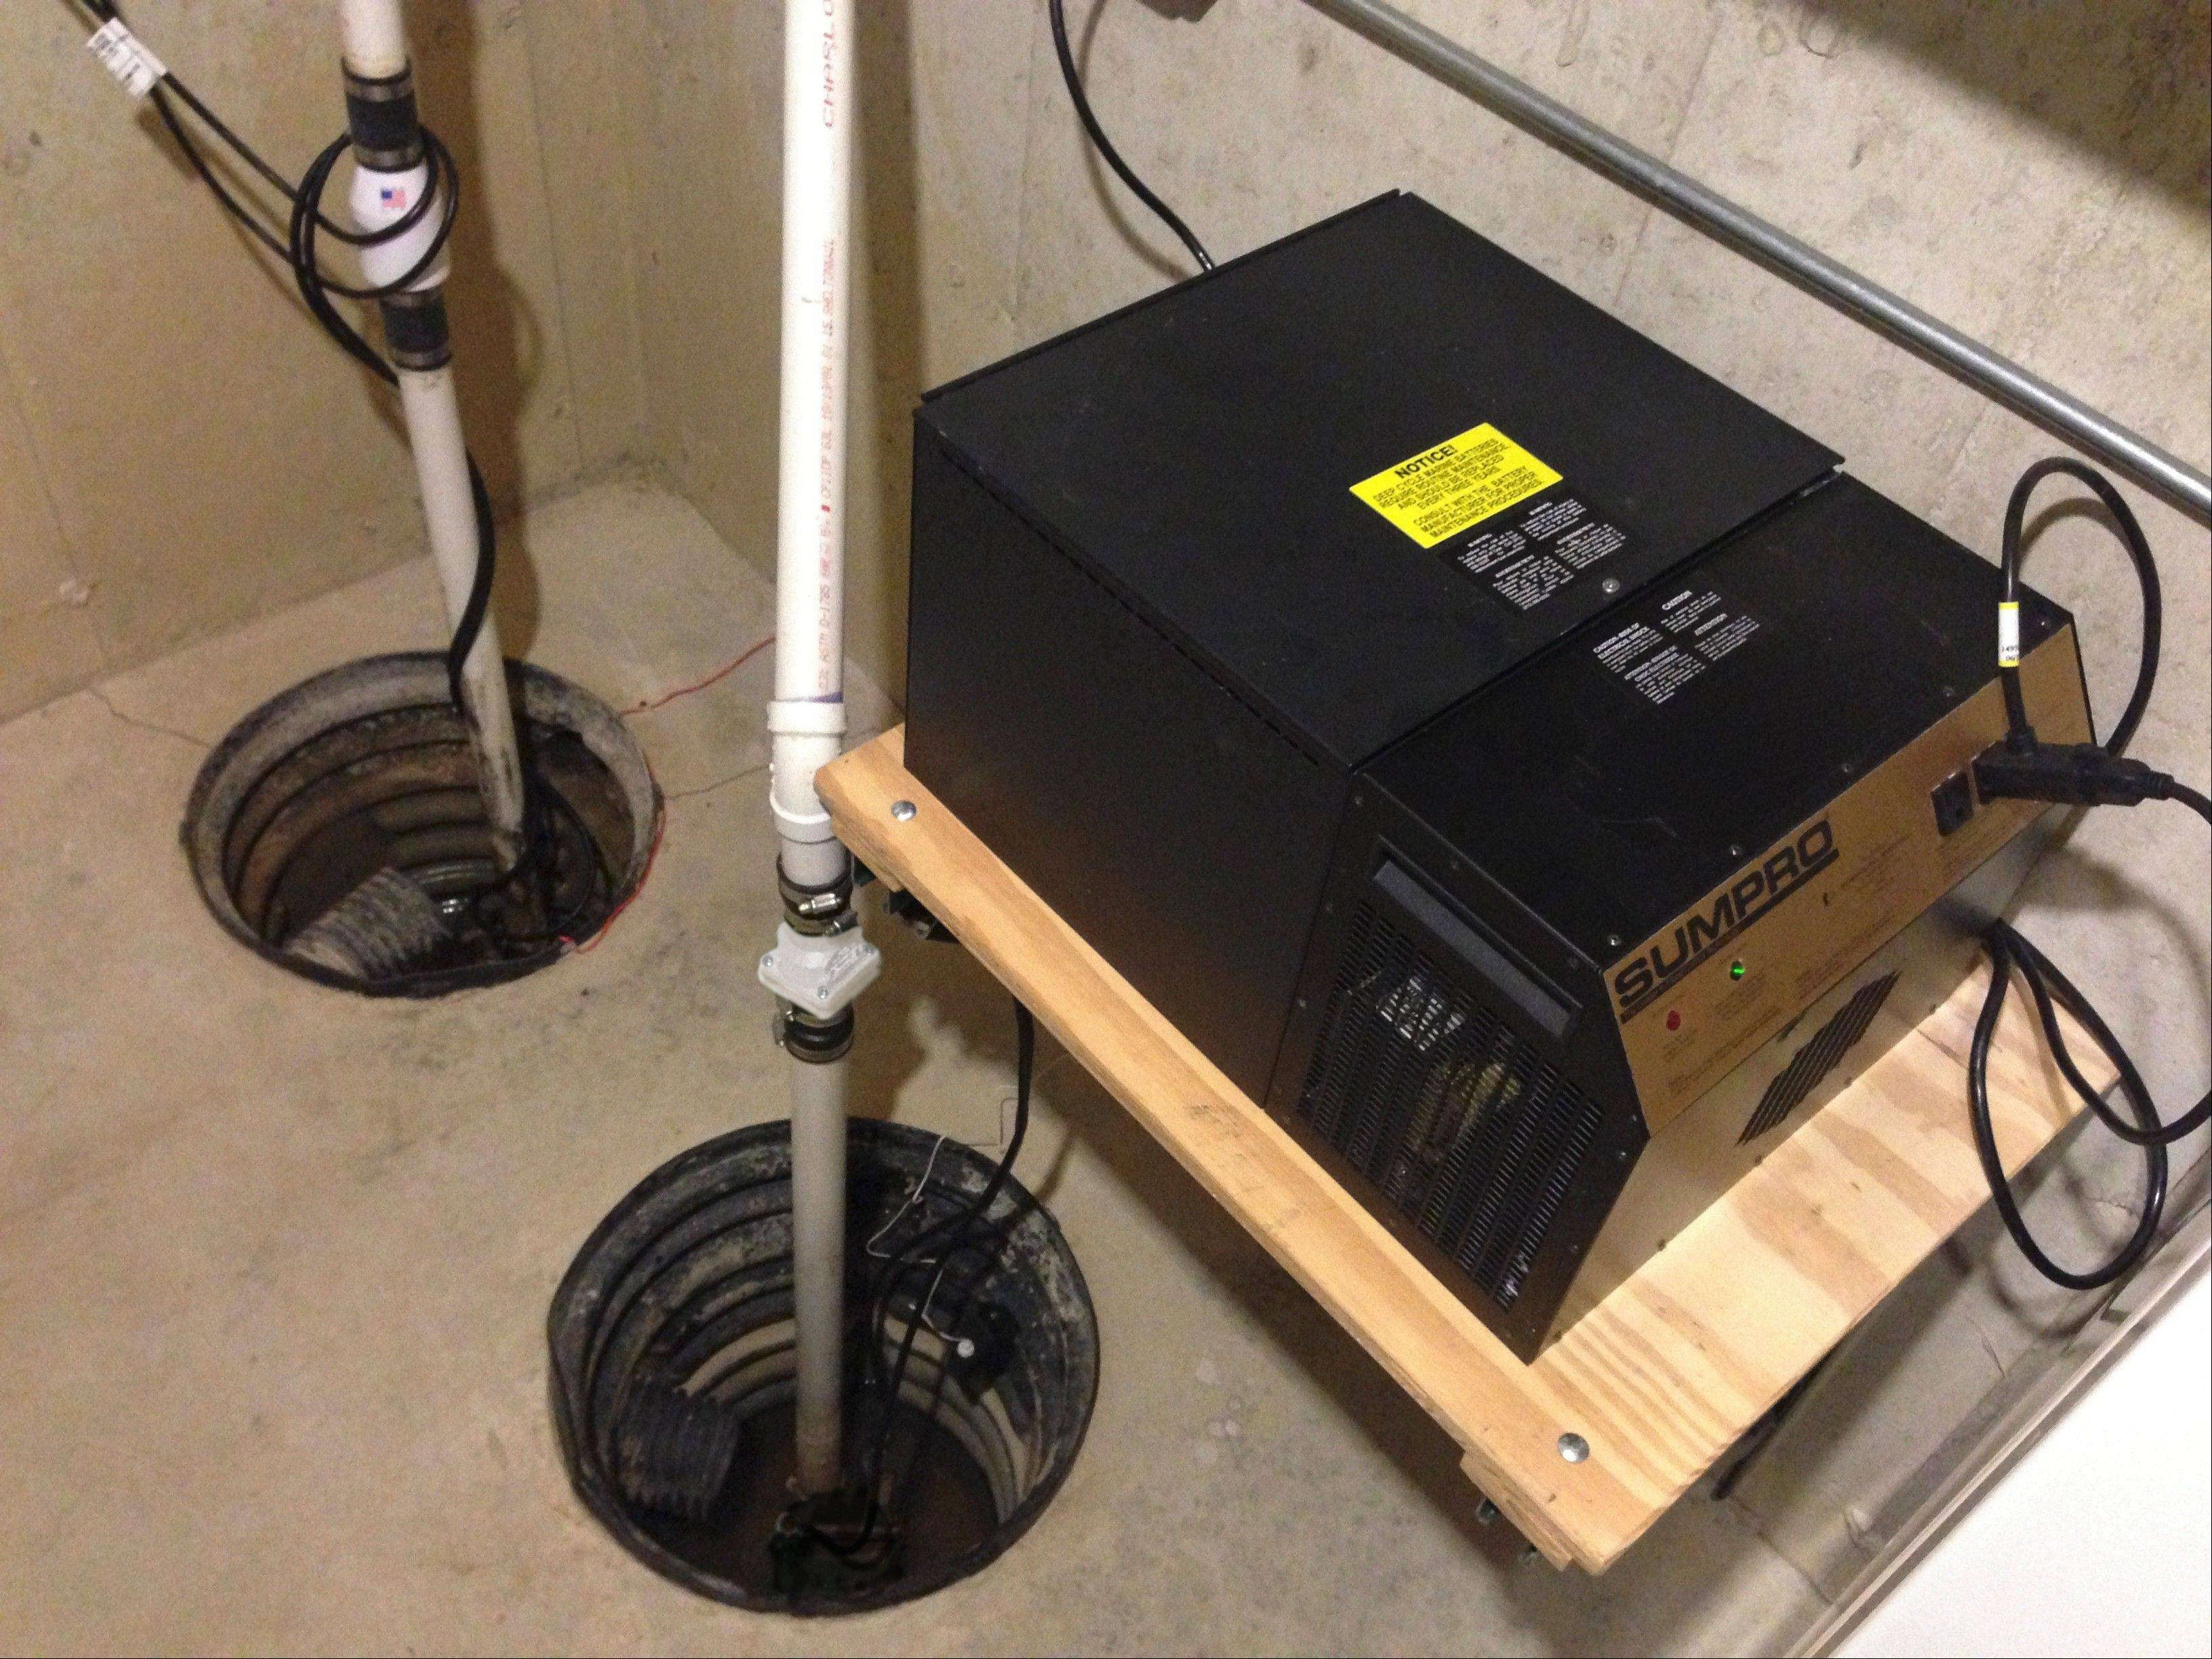 This sump pump setup, which includes the battery backup power source on the right, utilizes pumps by Metropolitan Industries of Romeoville.